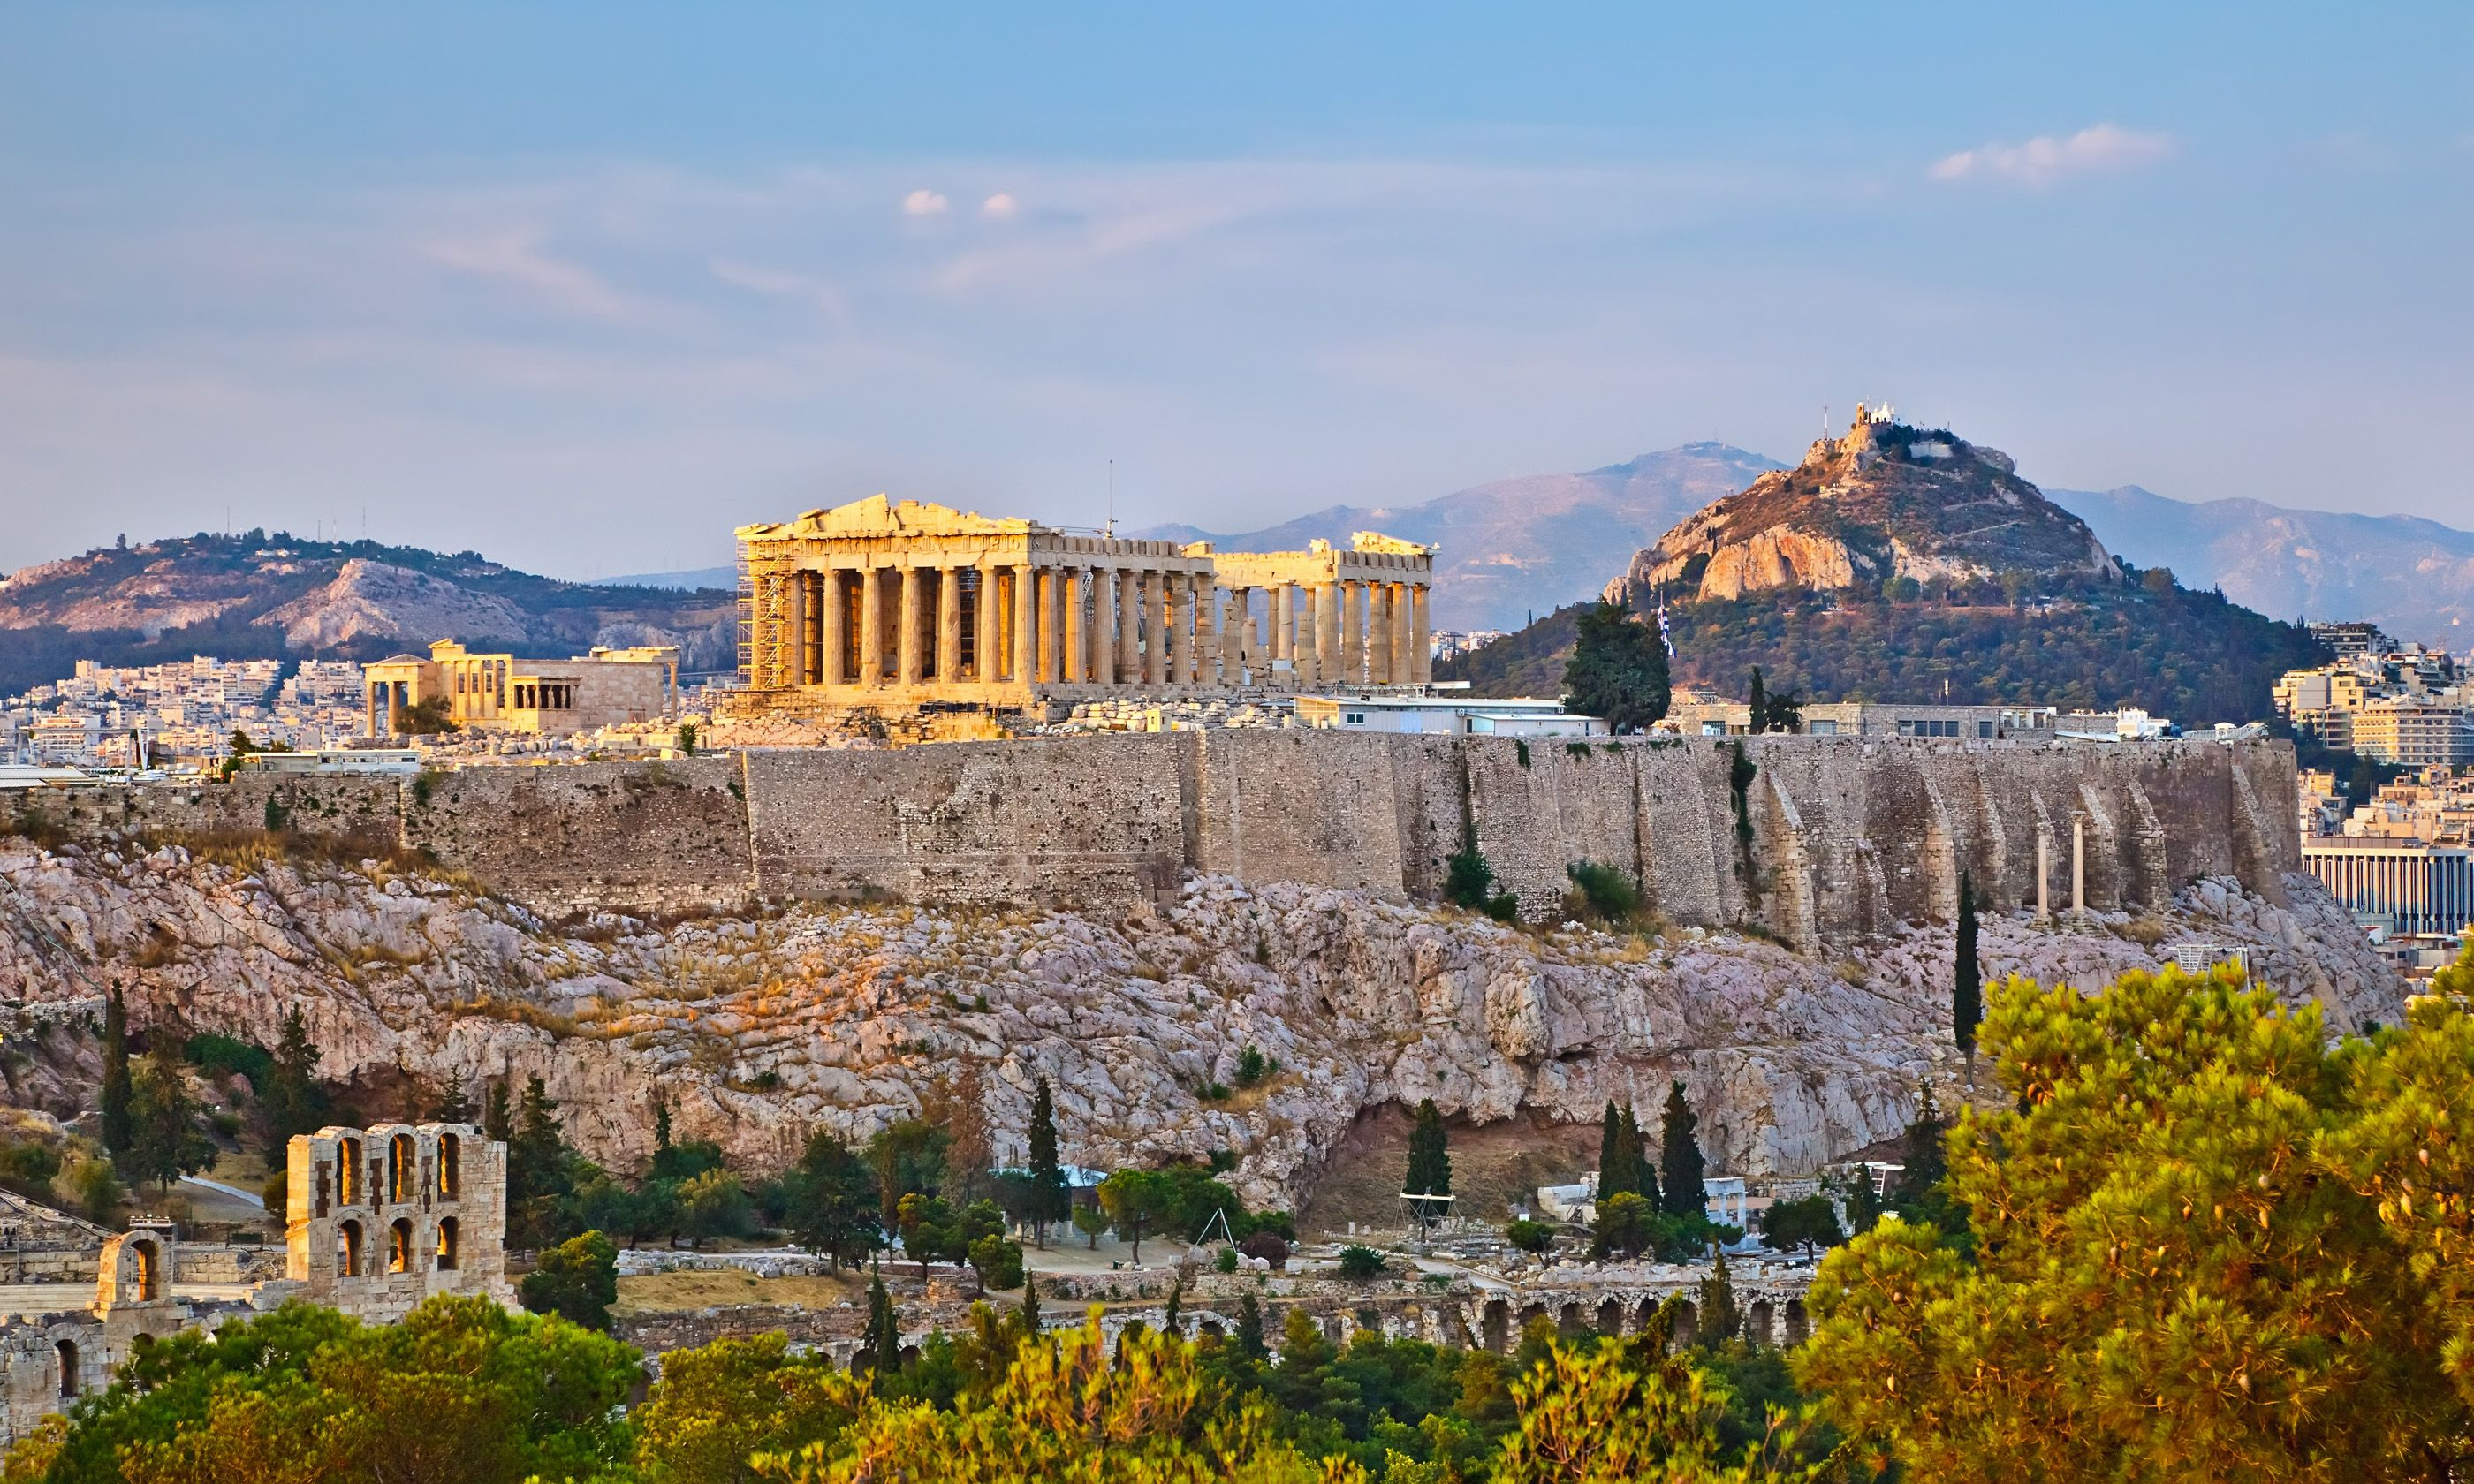 Acropolis at sunset (Shutterstock.com)